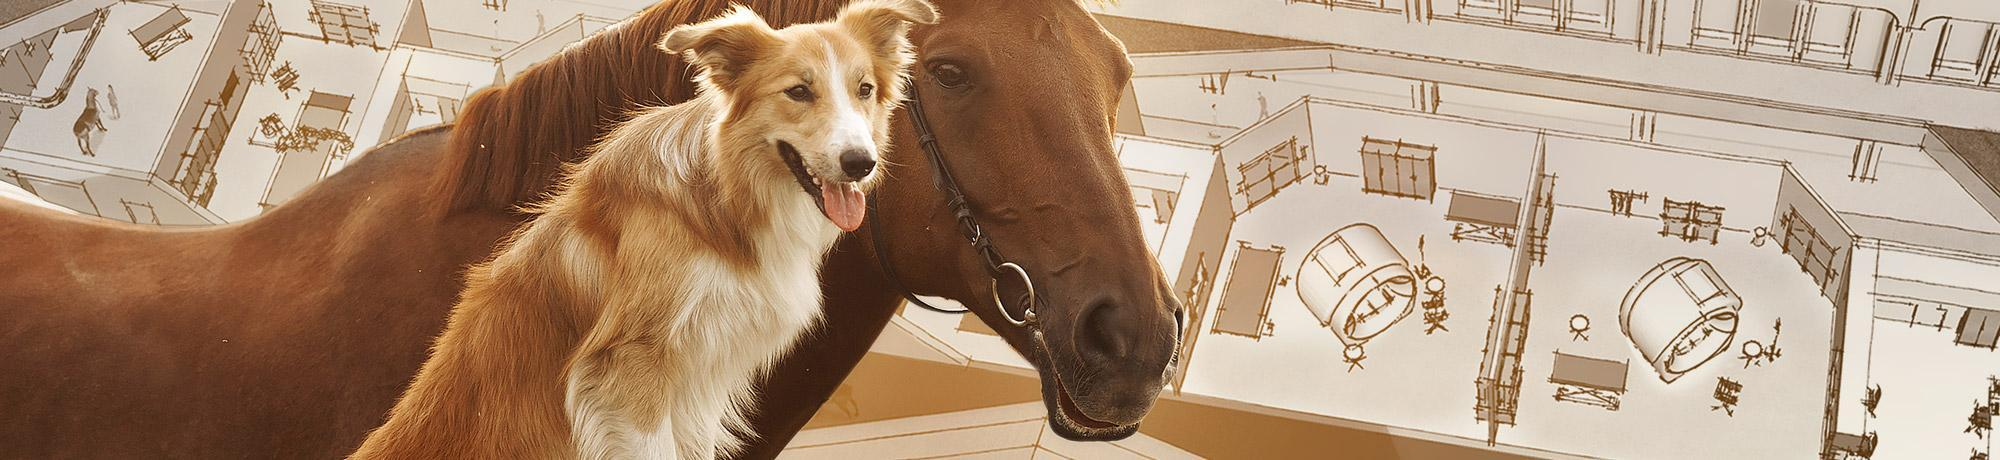 Horse and dog in front of sketches of veterinary medical center